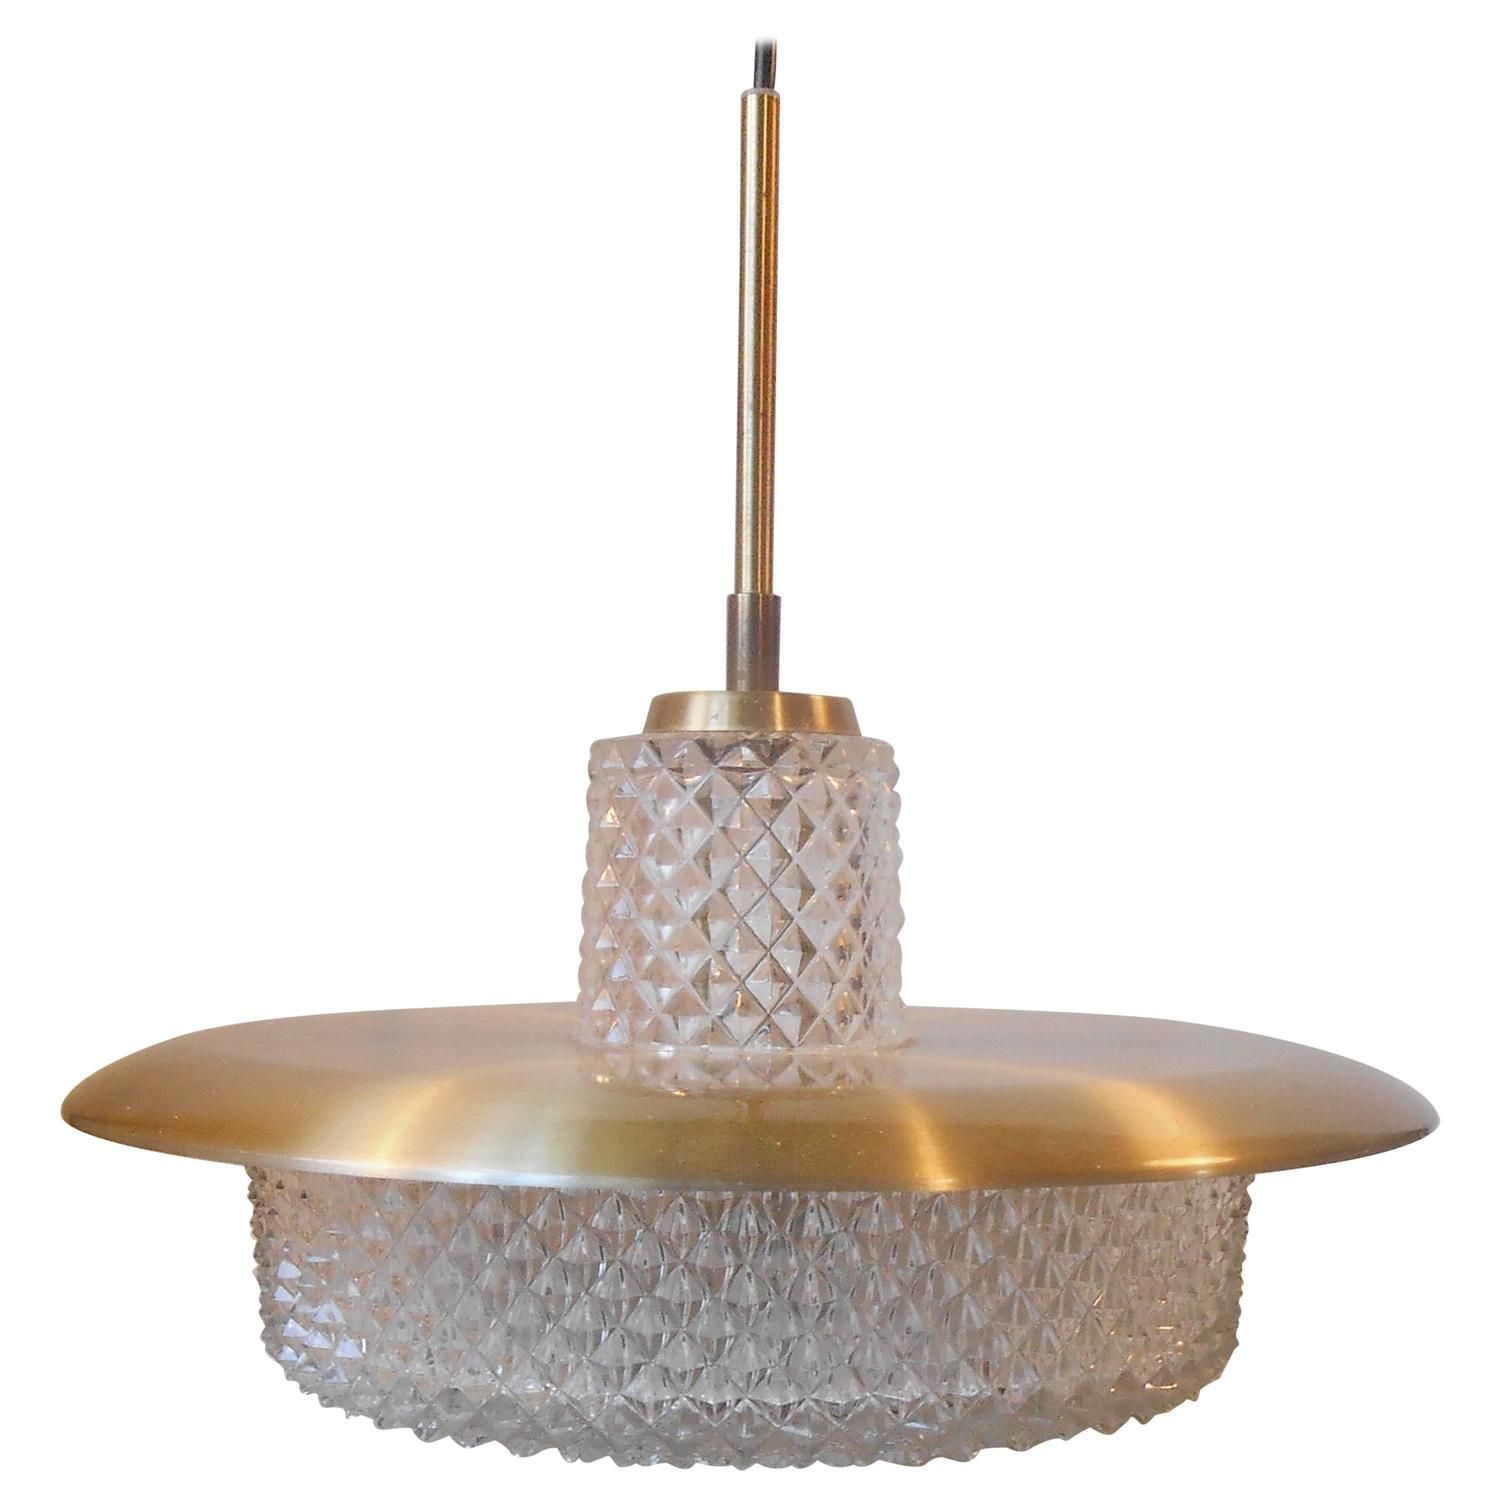 Carl Fagerlund Brass and Crystal Pendant Lamp Orrefors Sweden Mid